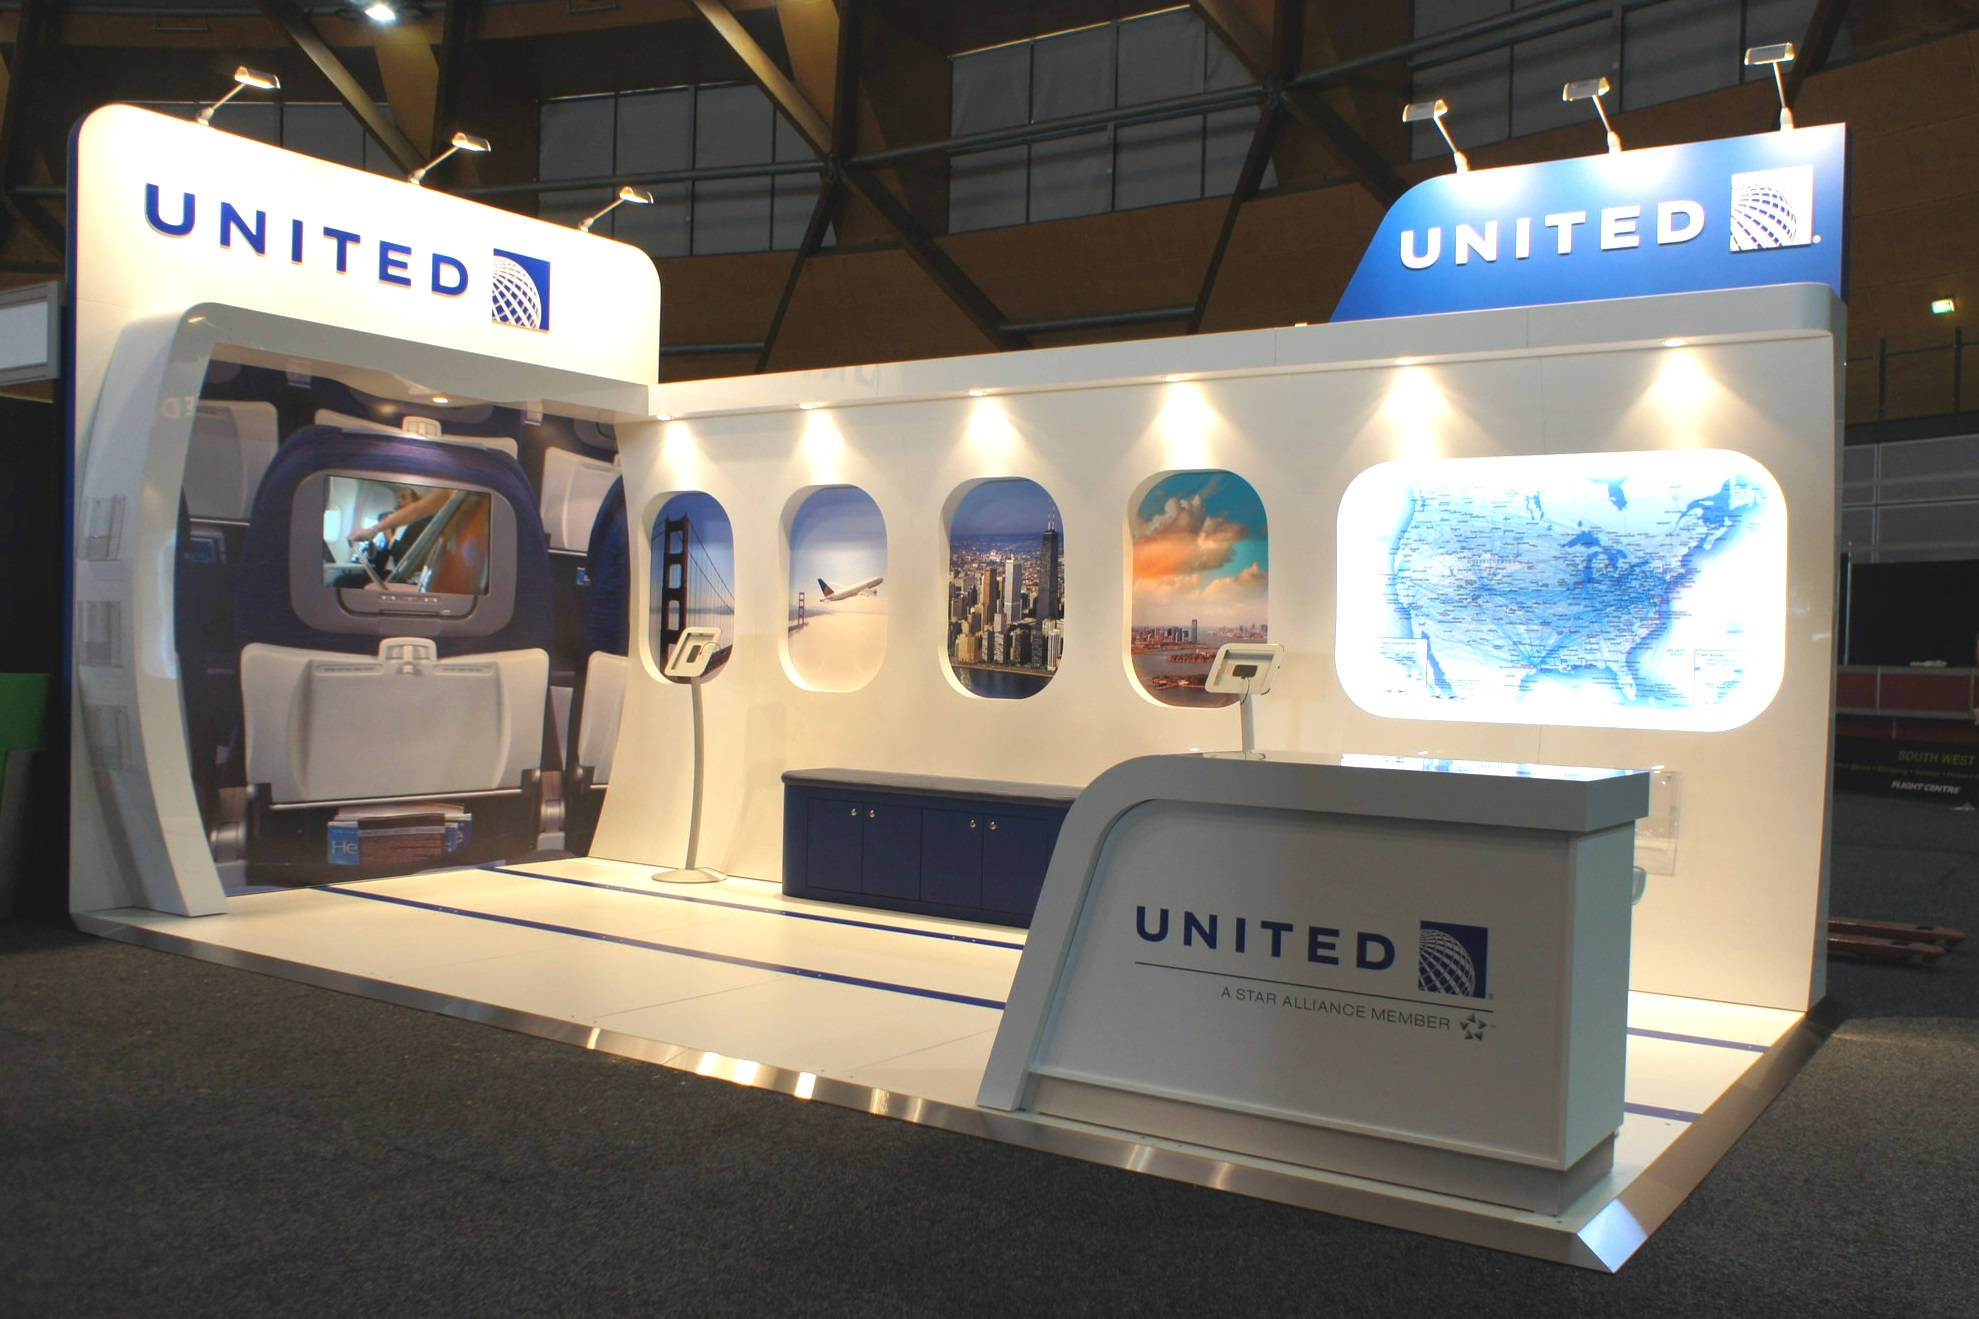 United Airlines at The Travel Expo